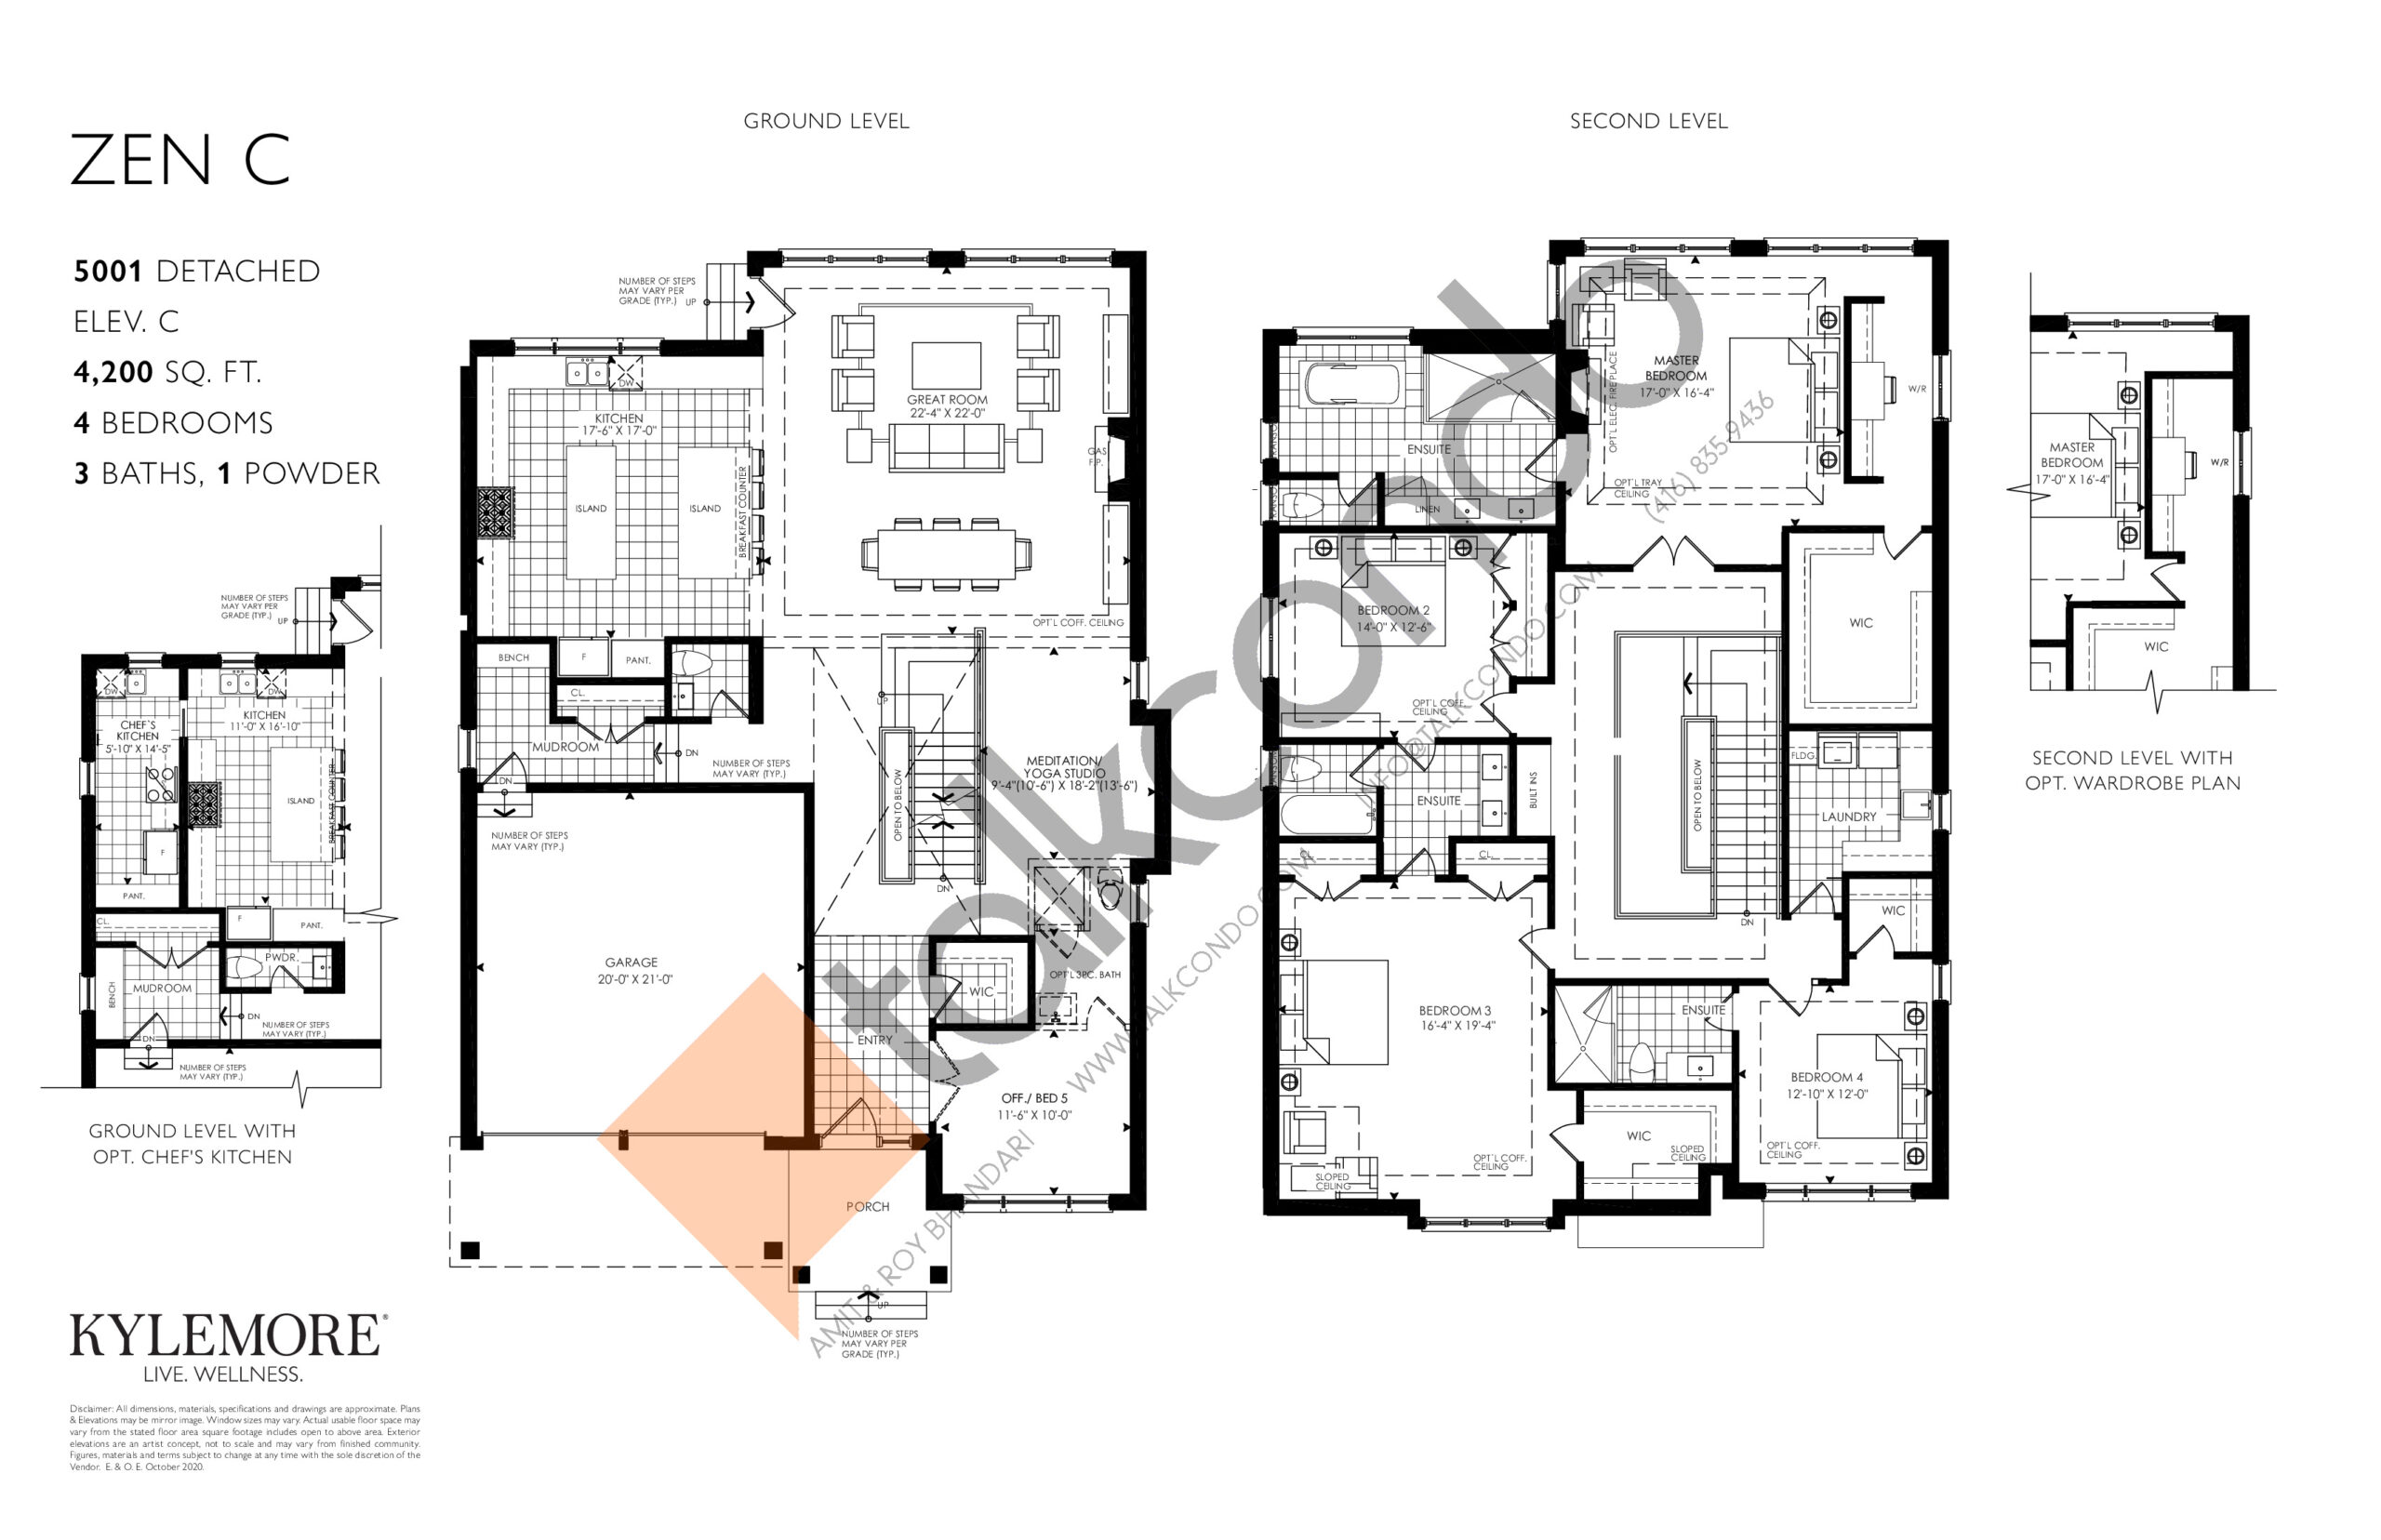 Zen C - Elev. C Floor Plan at Angus Glen South Village - 4200 sq.ft